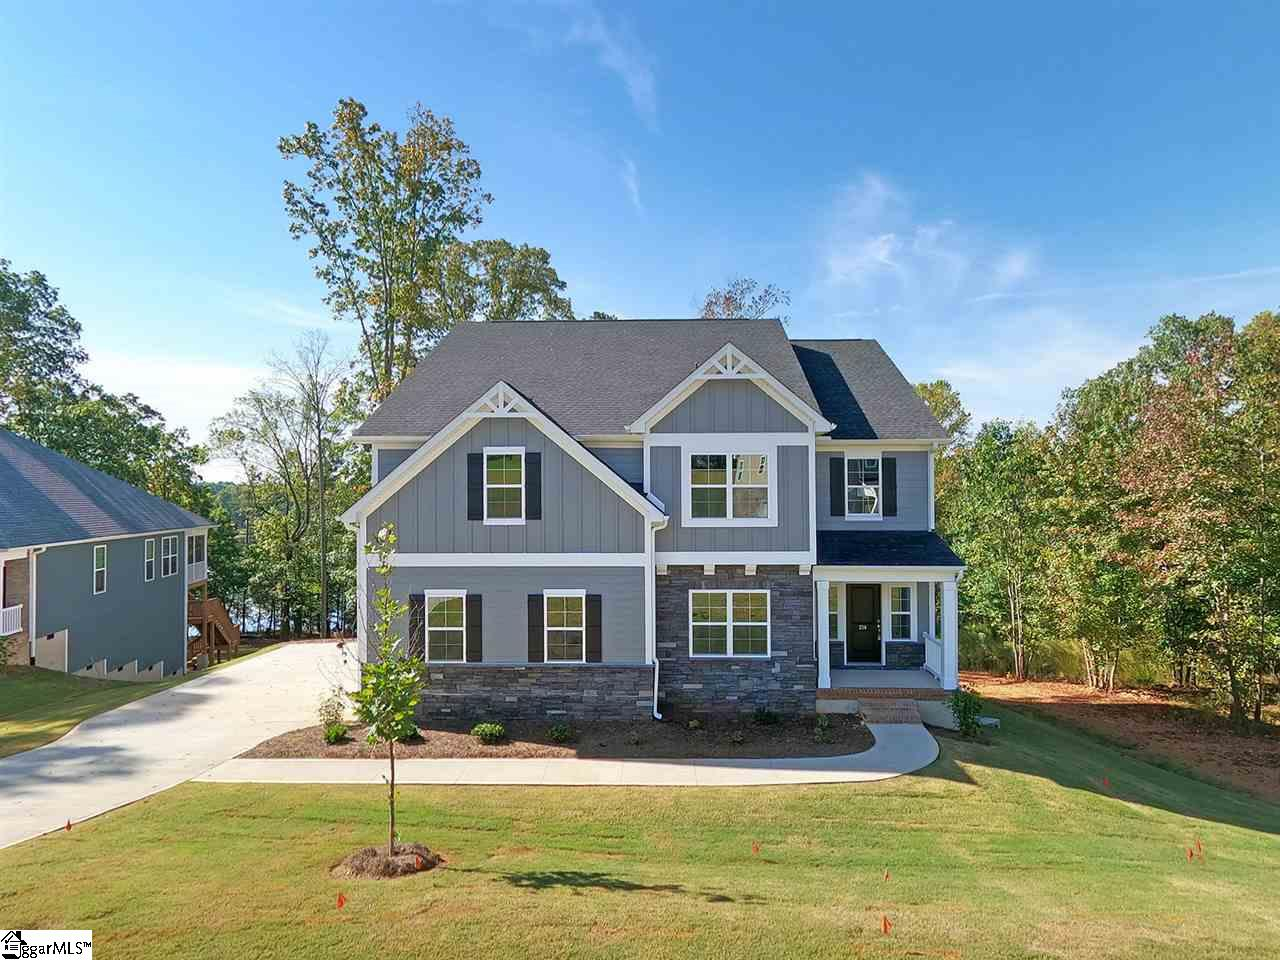 214 Rushing Waters Inman, SC 29349